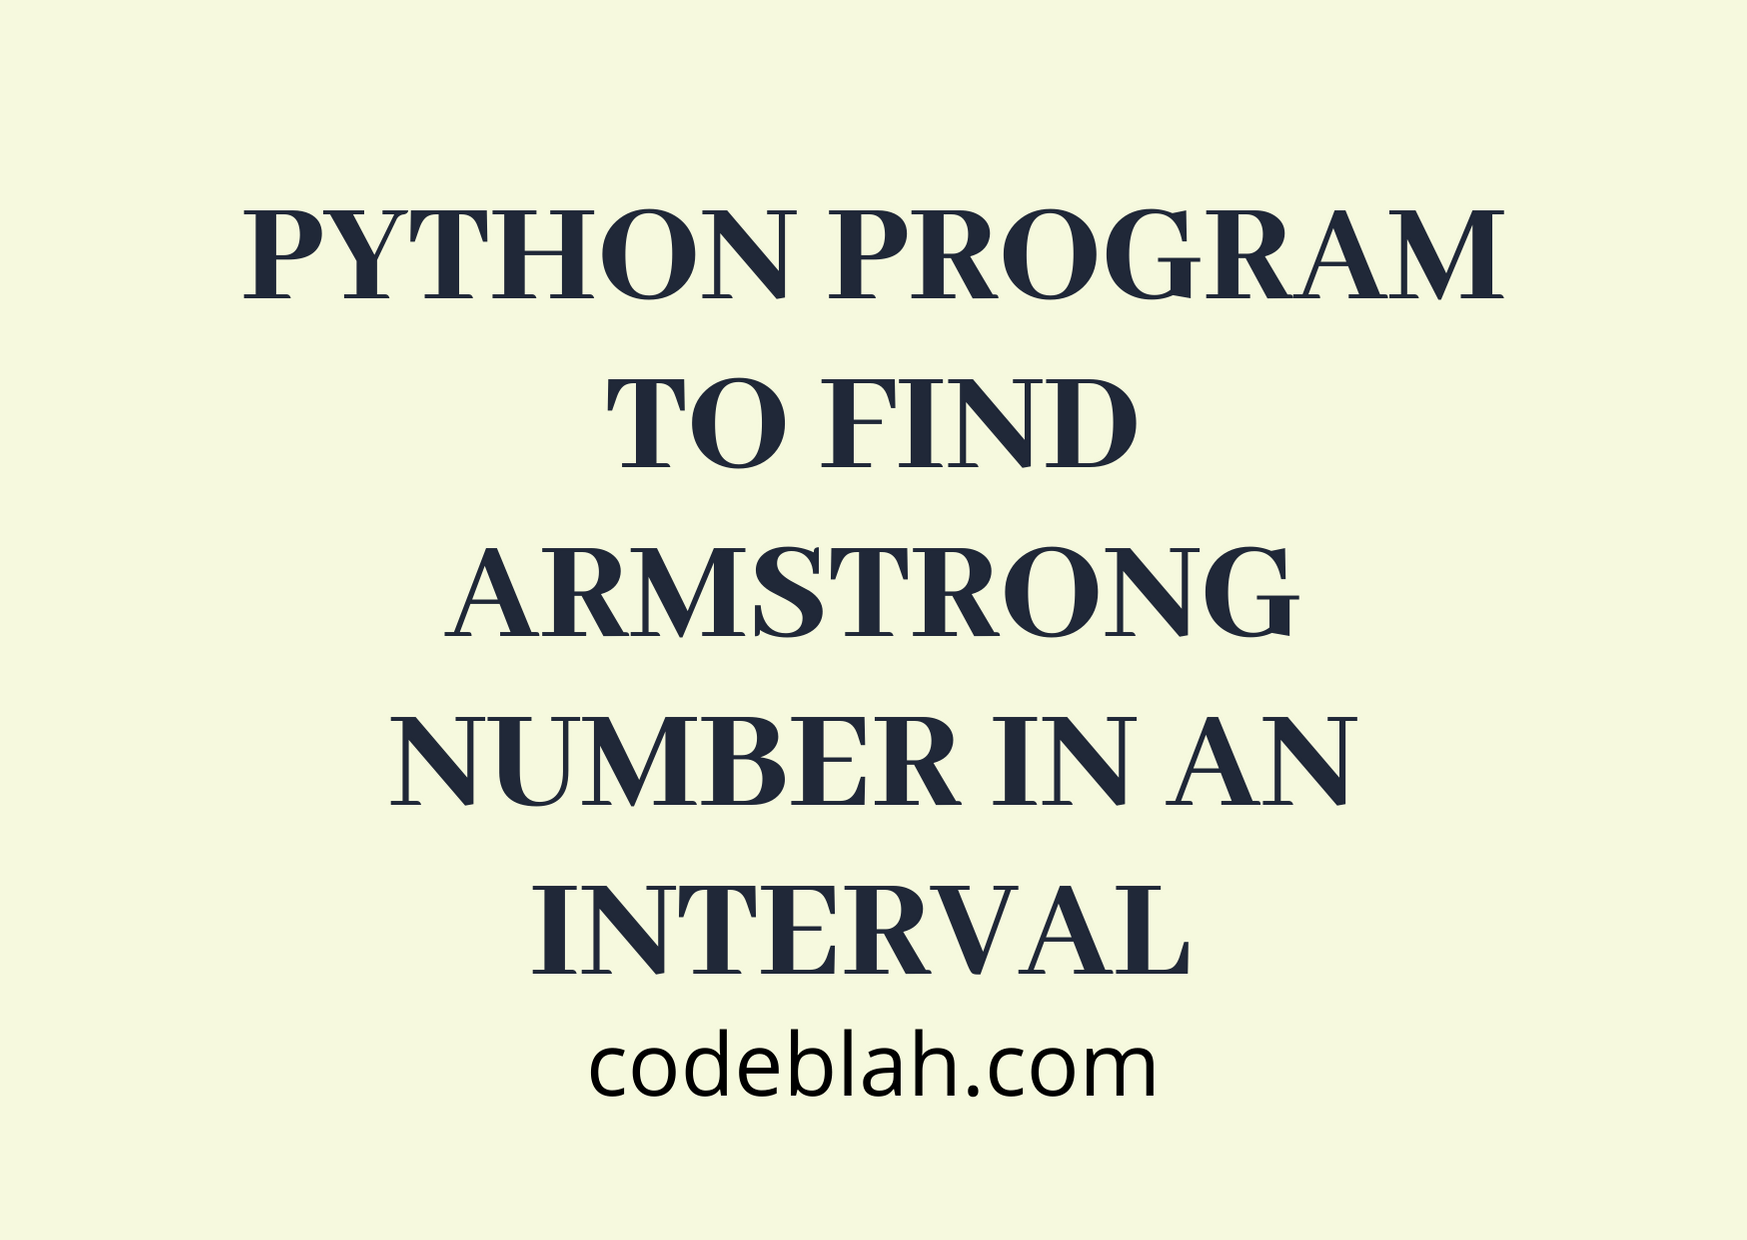 Python Program to Find Armstrong Number in an Interval